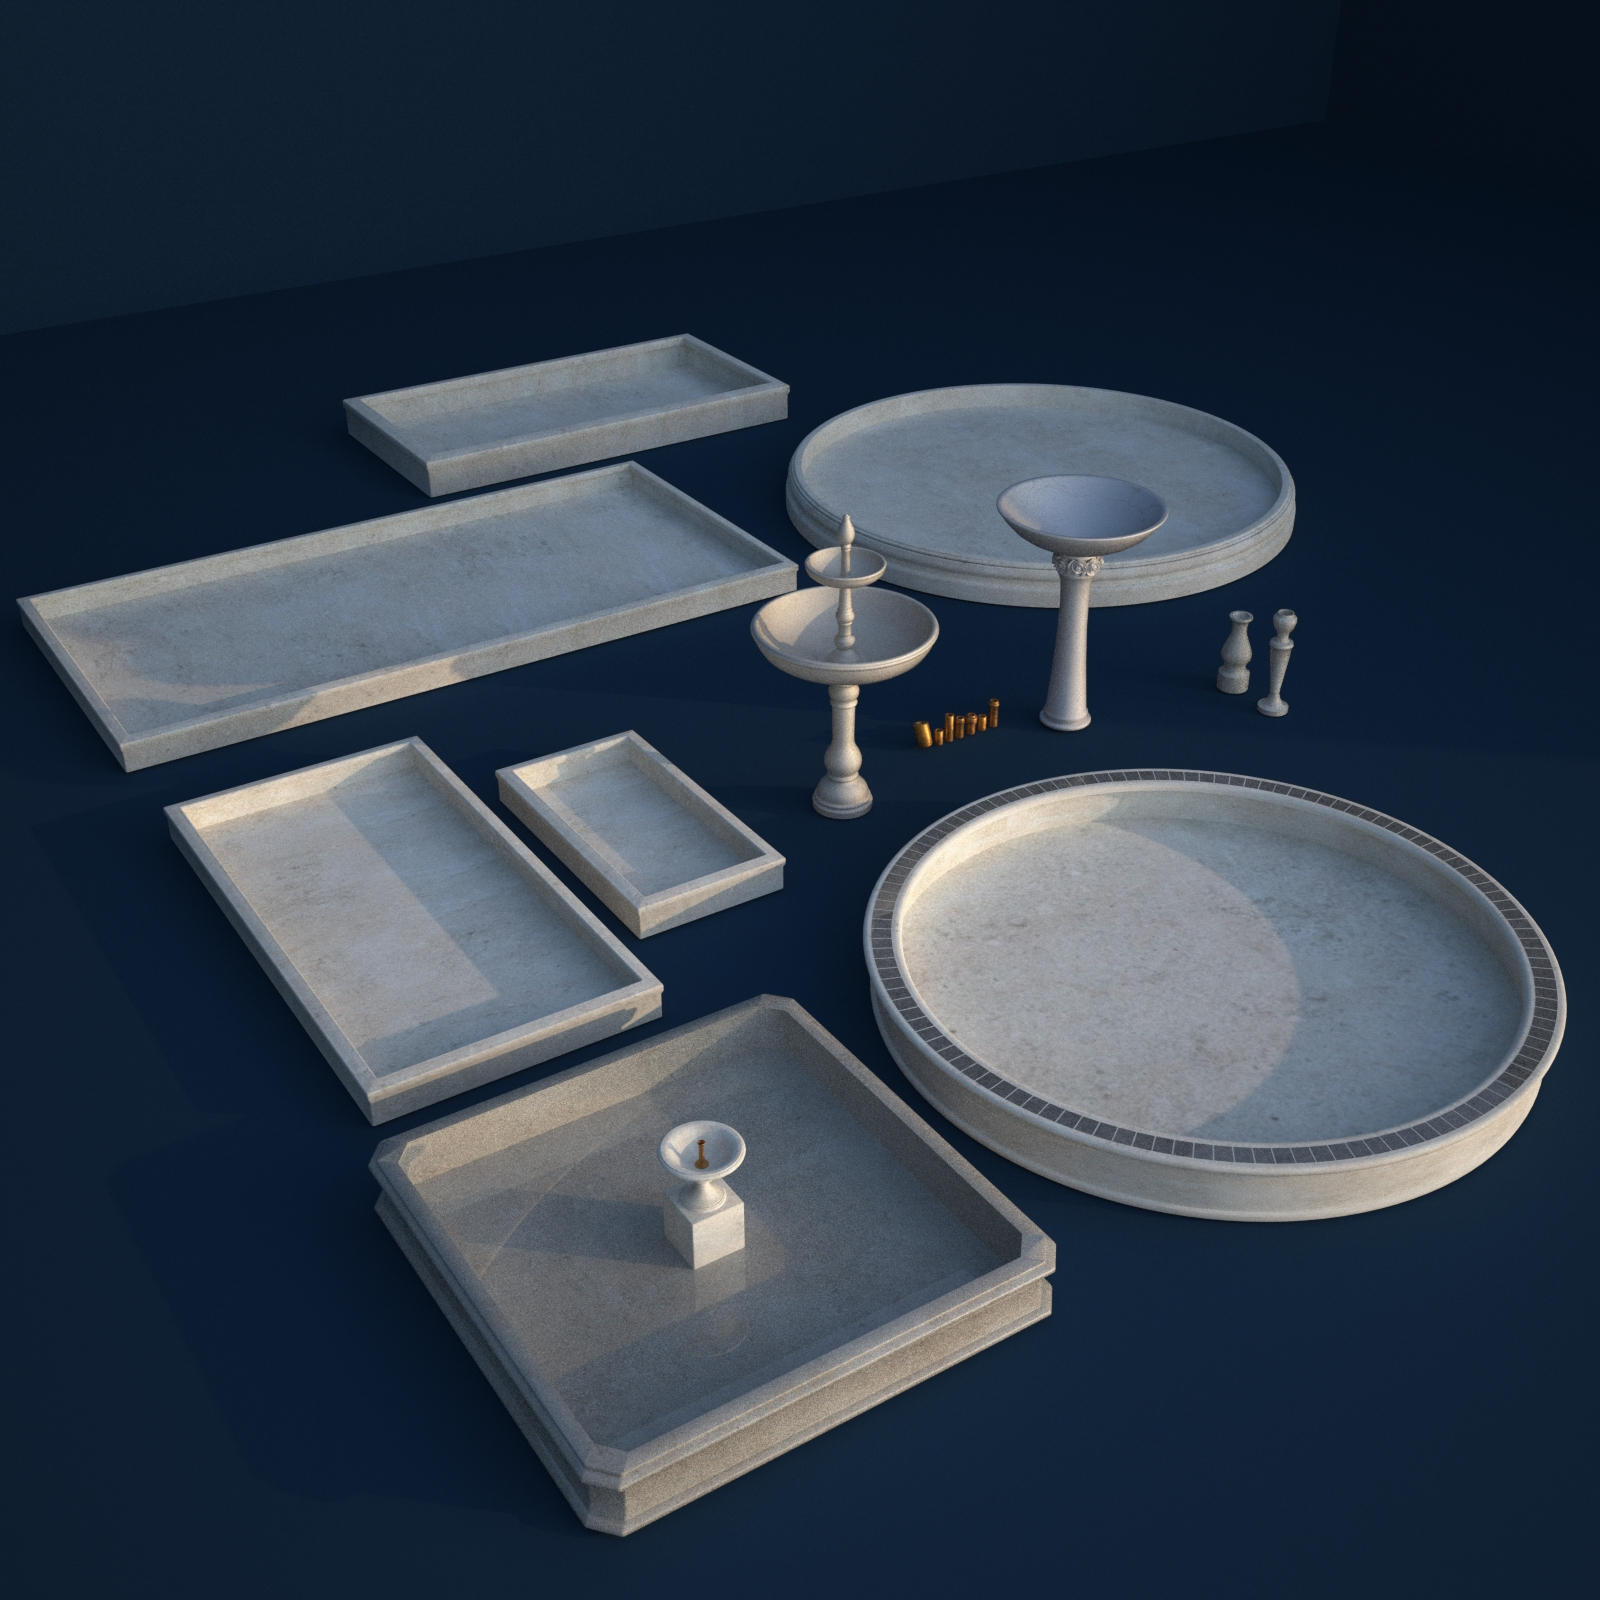 Fountain Maker Kit - Basins And Fountains - Extended License